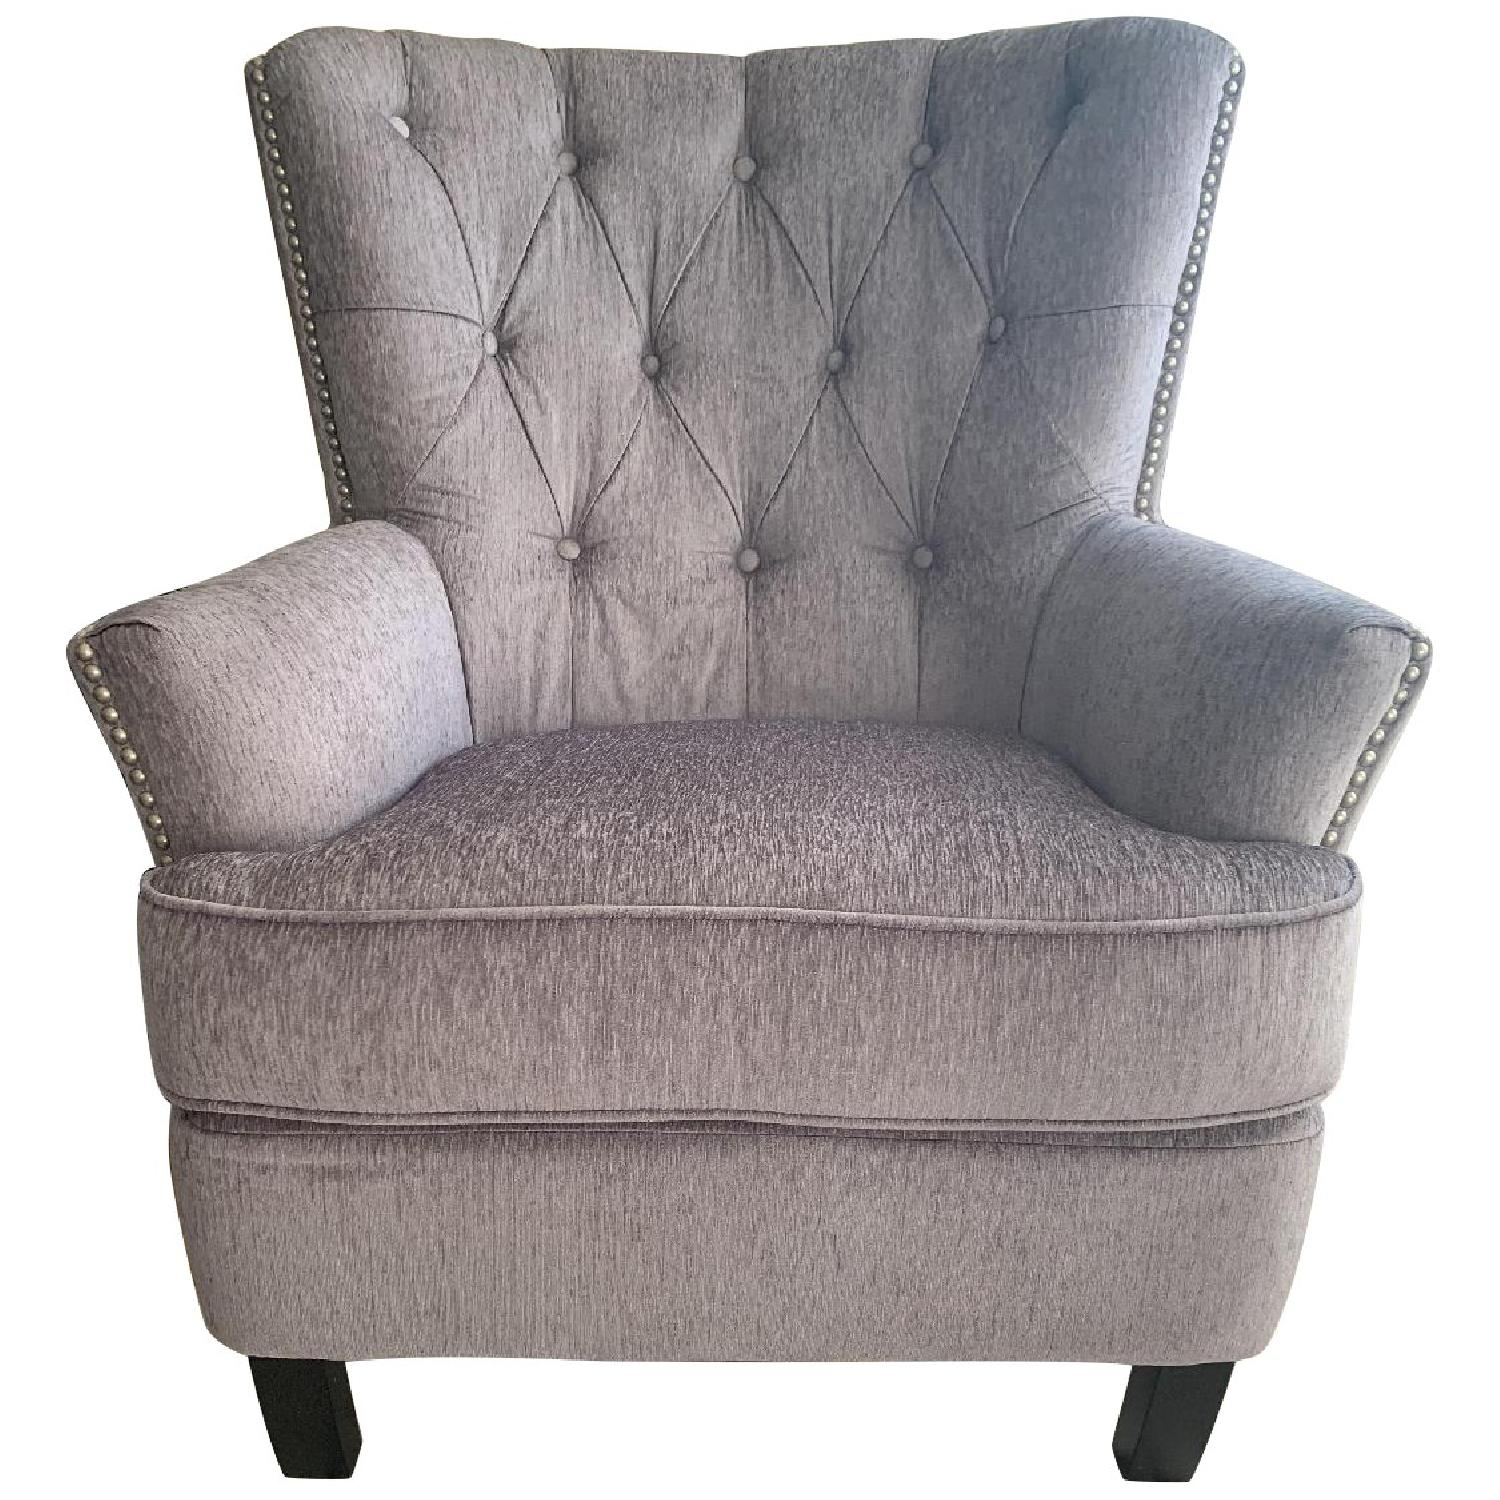 World Market Silver Accent Chair - image-6